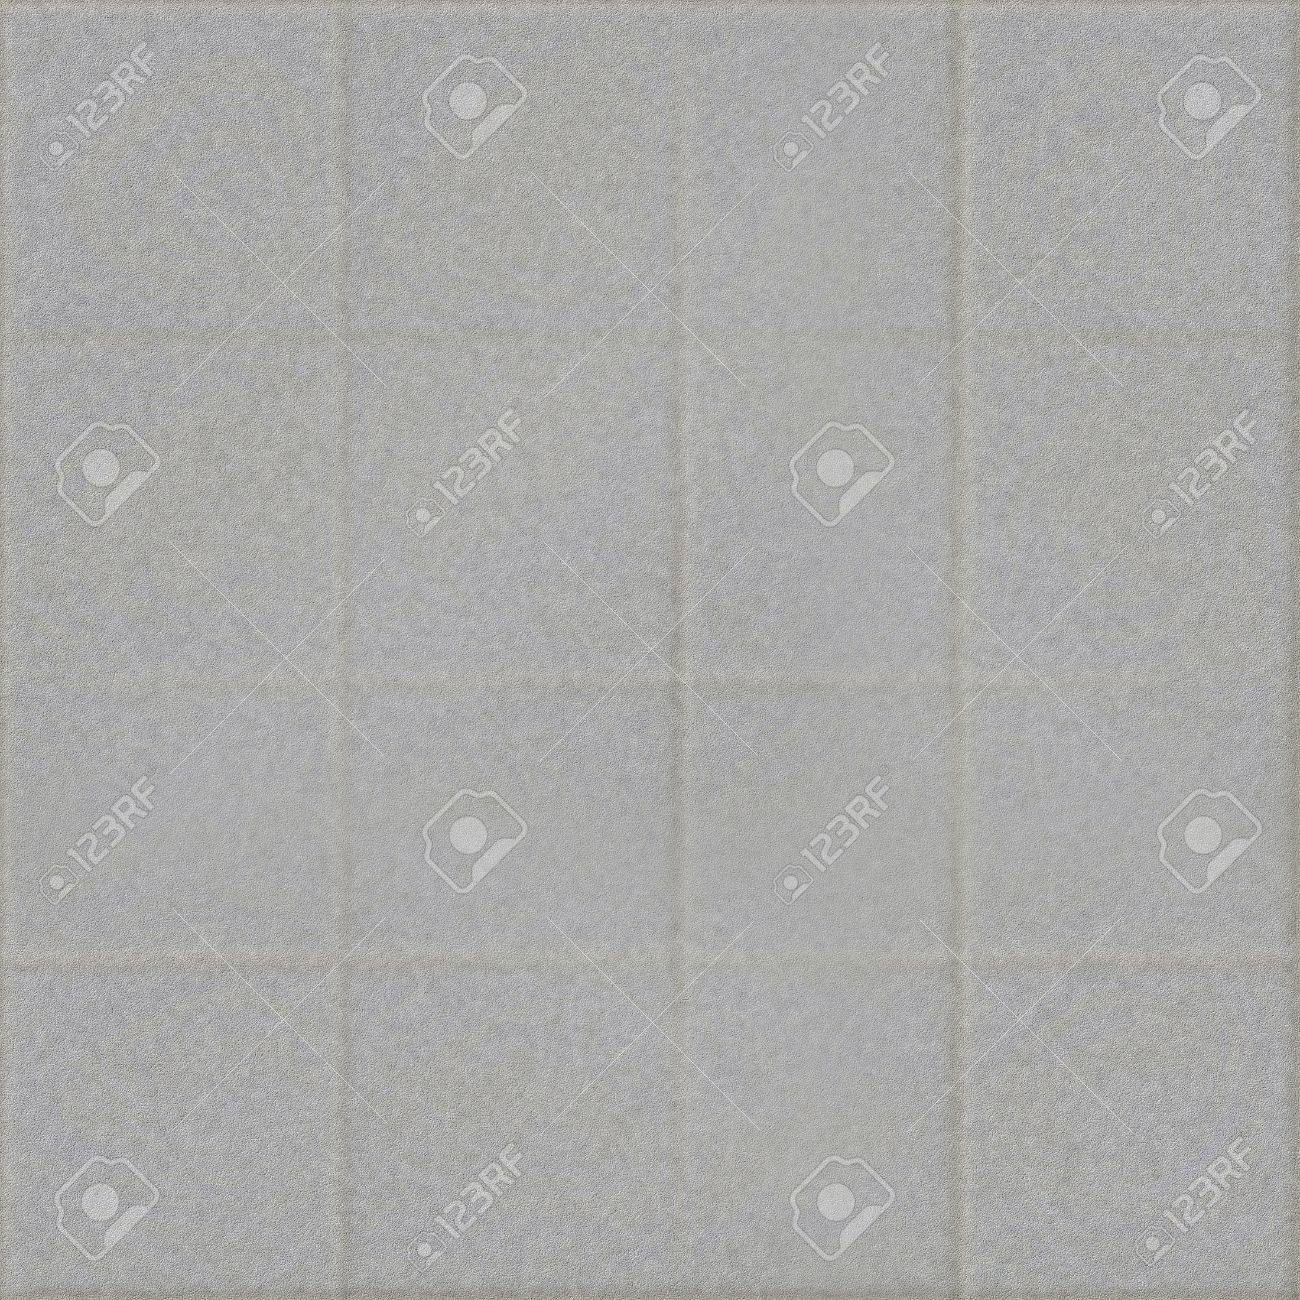 Grey Abstractive Stuccobackground Seamless Tileable Sandembossed